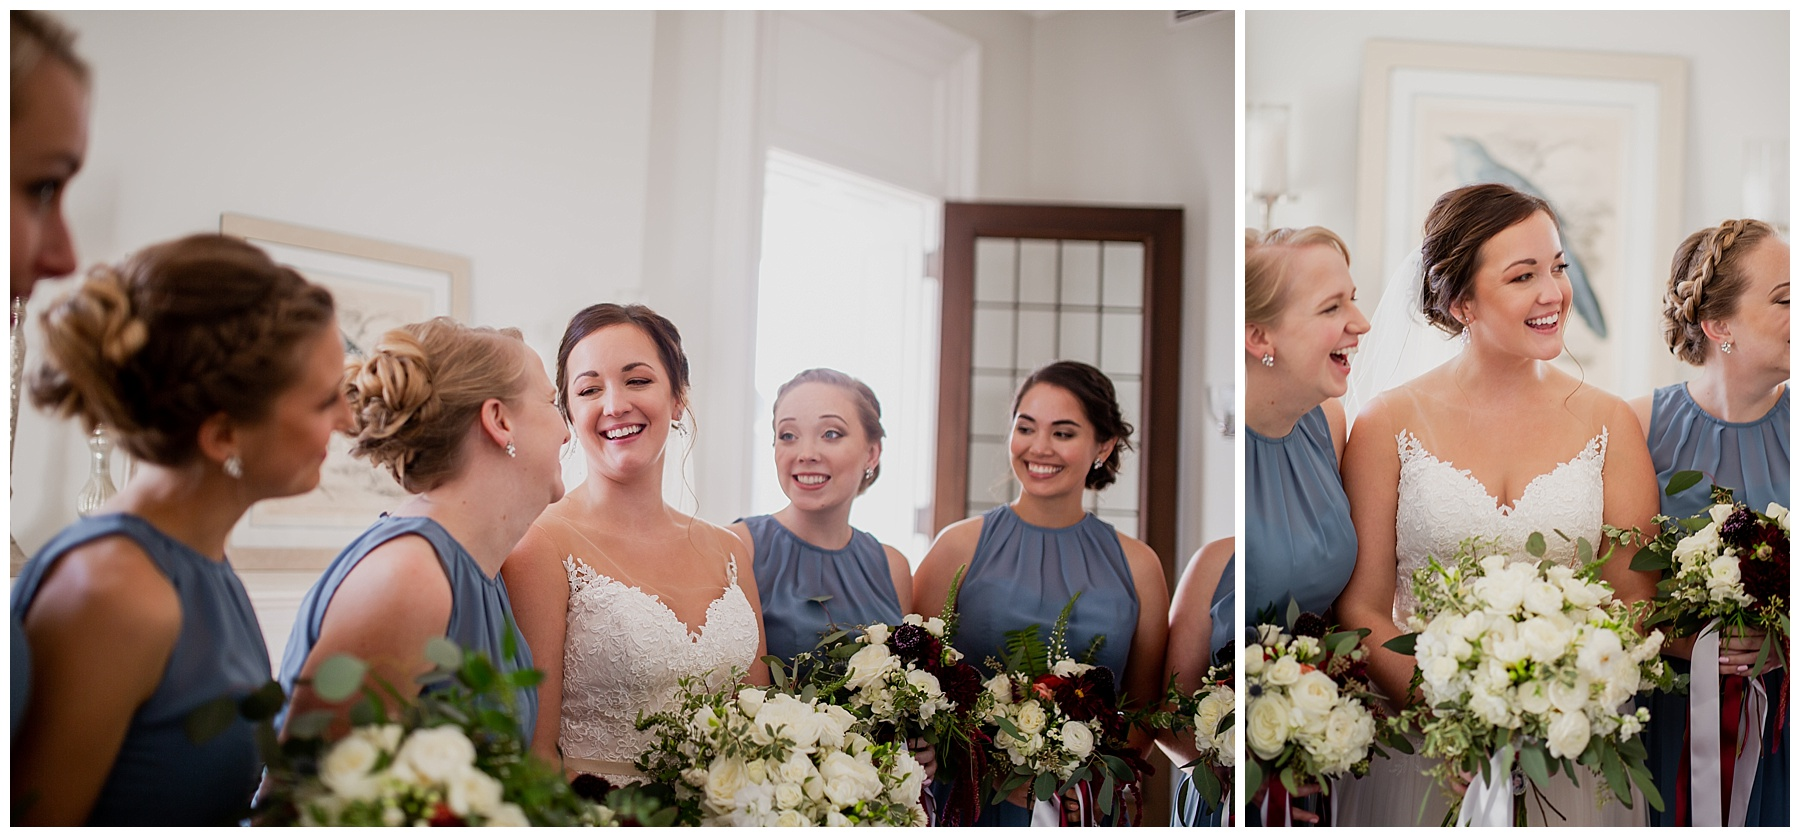 WISCONSIN WEDDING PHOTOGRAPHER -THE COVENANT AT MURRAY MANSION WEDDING-98.jpg